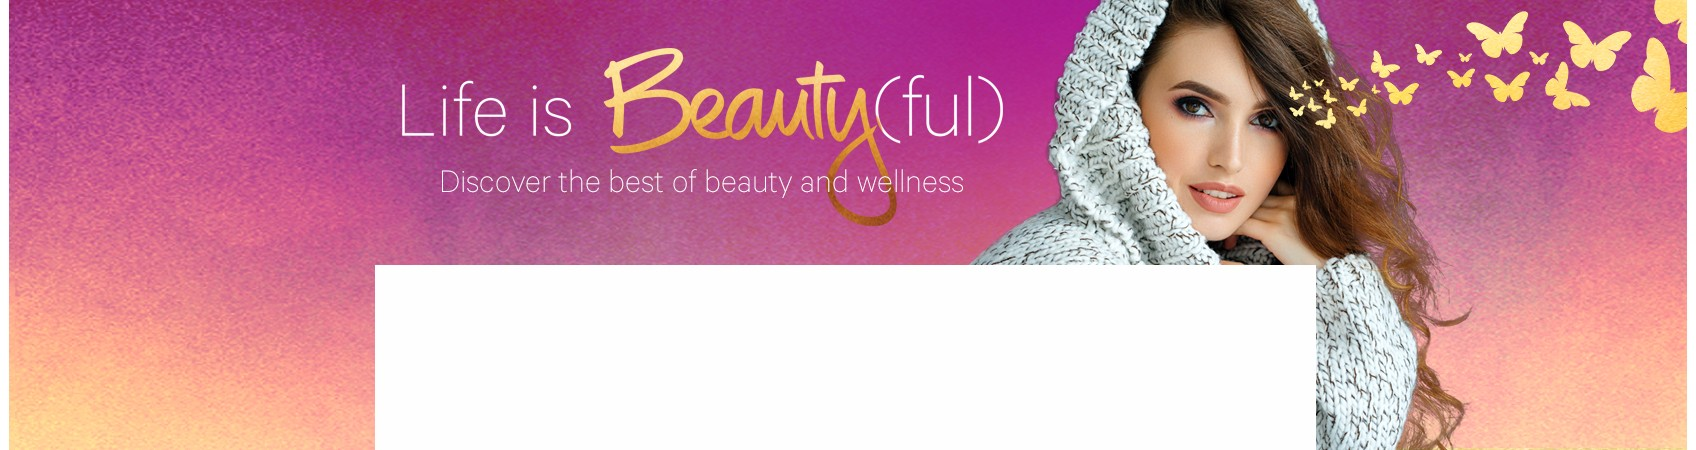 Best of Beauty, Wellness and Healthcare